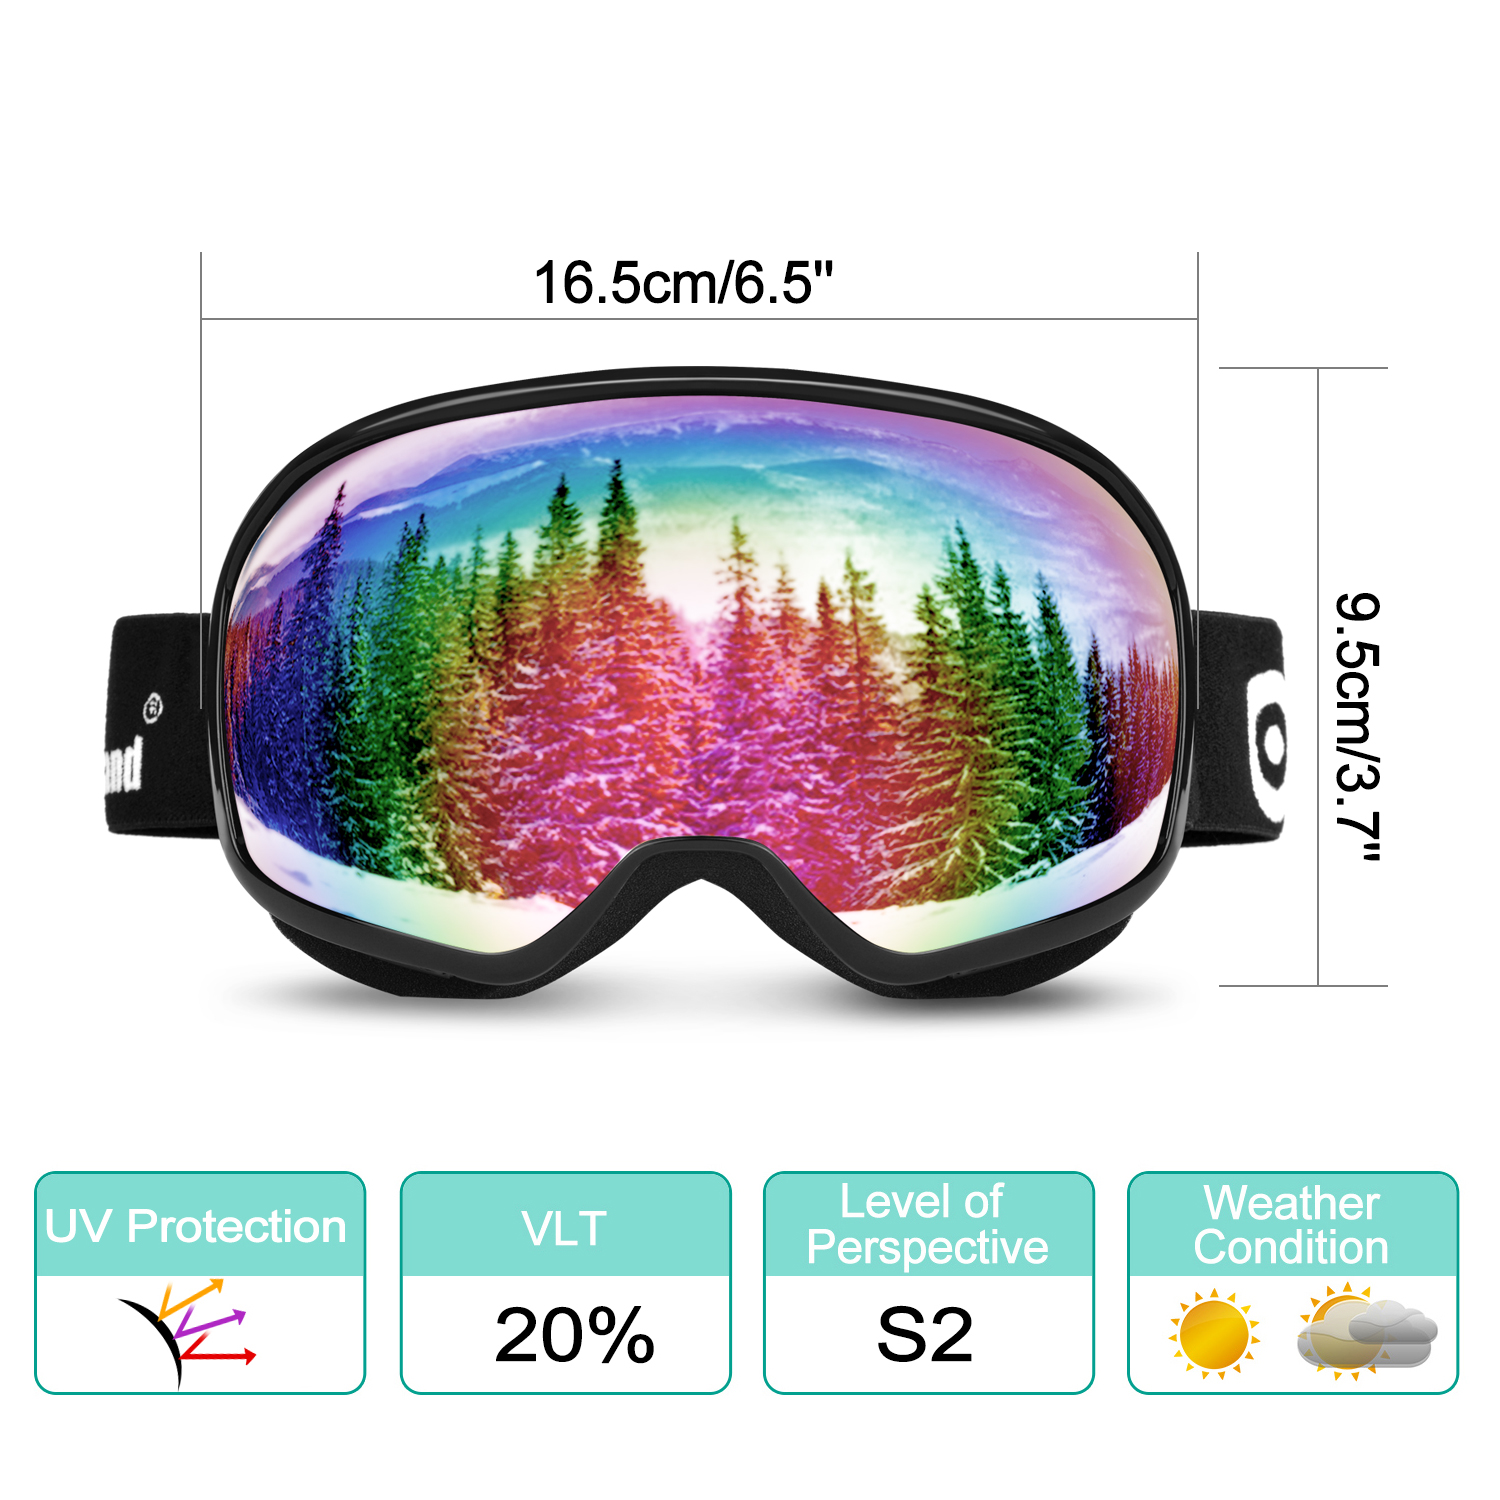 Odoland Large Spherical Ski Goggles for Kids Aged 8-16 OTG goggles S2 Double Anti-Fog Lens w  UV400 Protection by